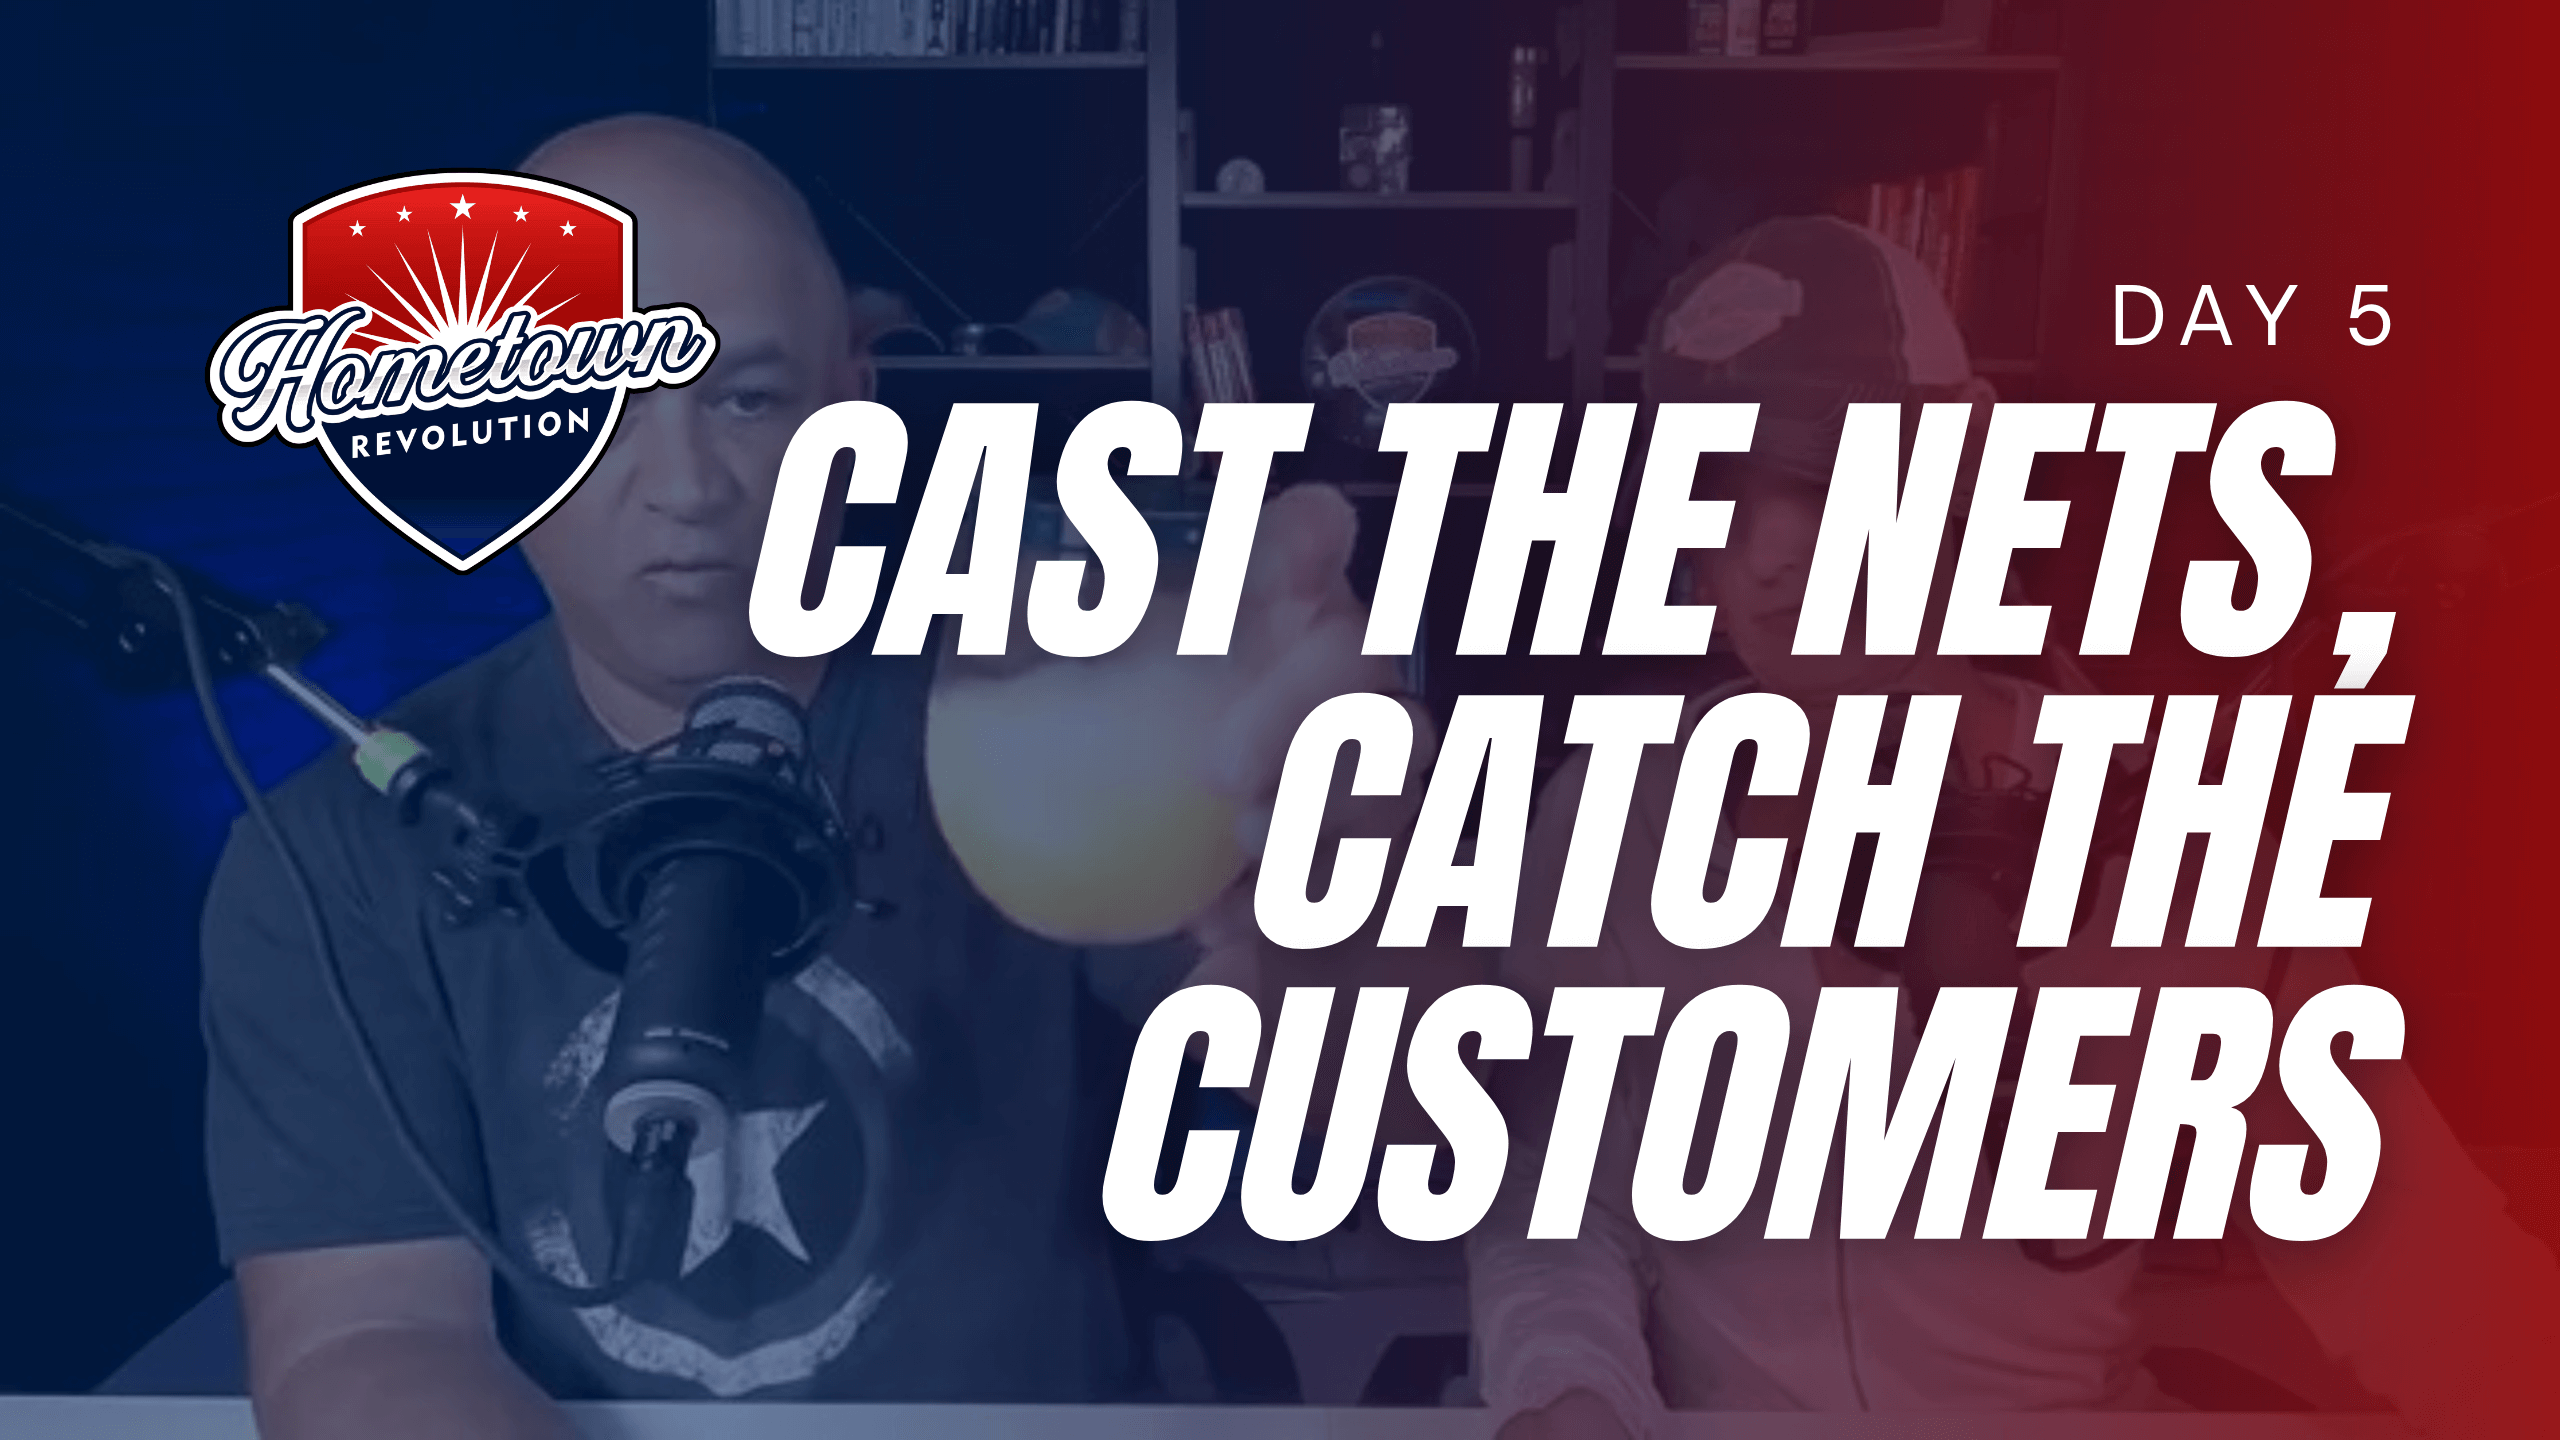 cast the net catch the customers with pat and angie cherubini